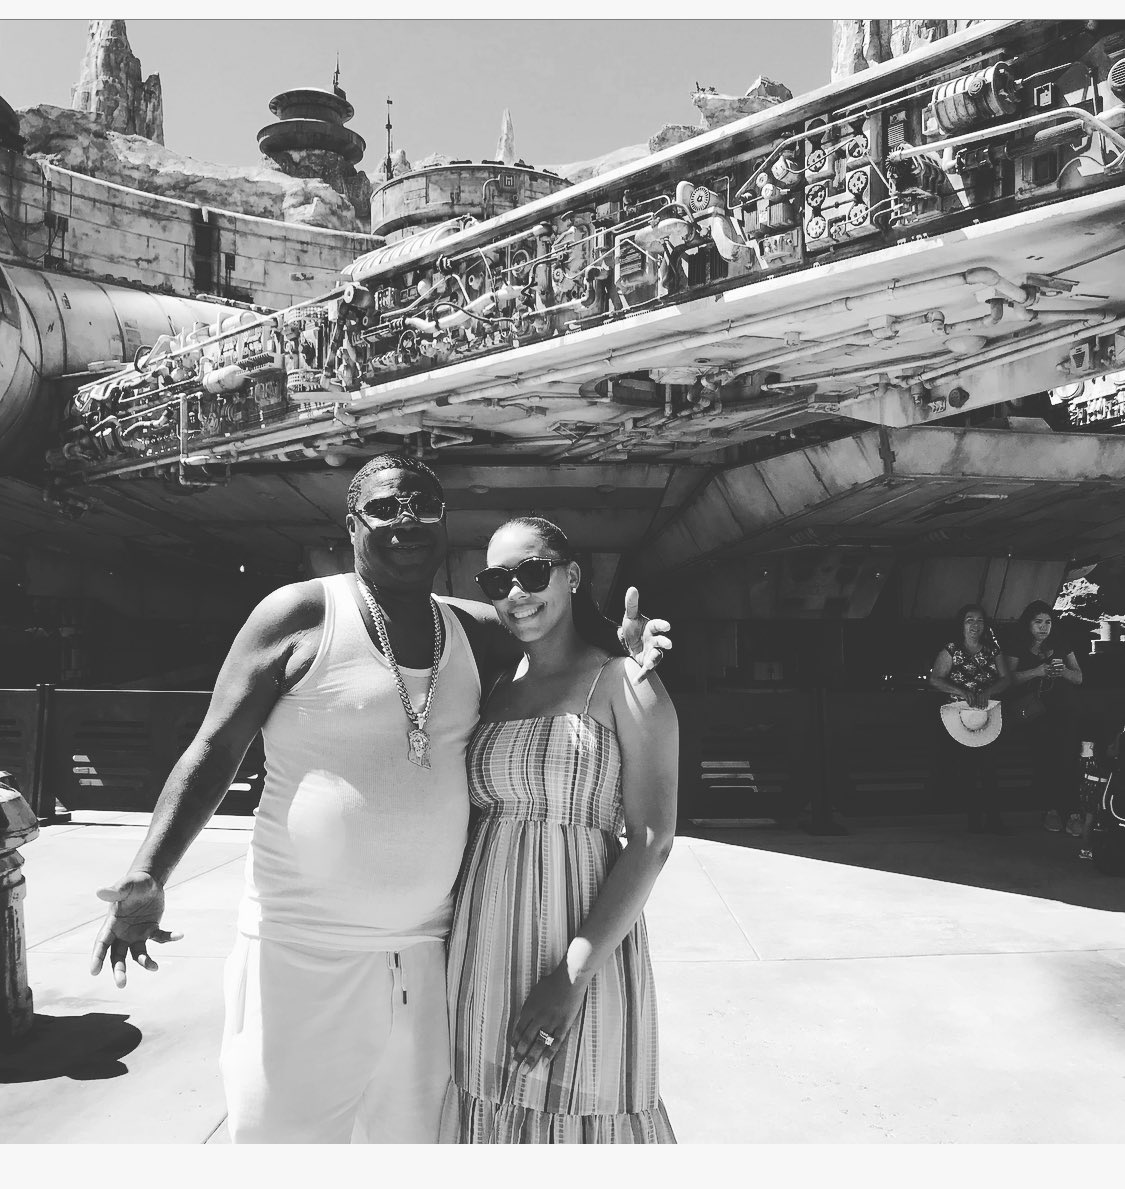 Magical time at @Disneyland. I'm Han Solo and don't let anyone tell you different!!!! @IAMMeganMorgan